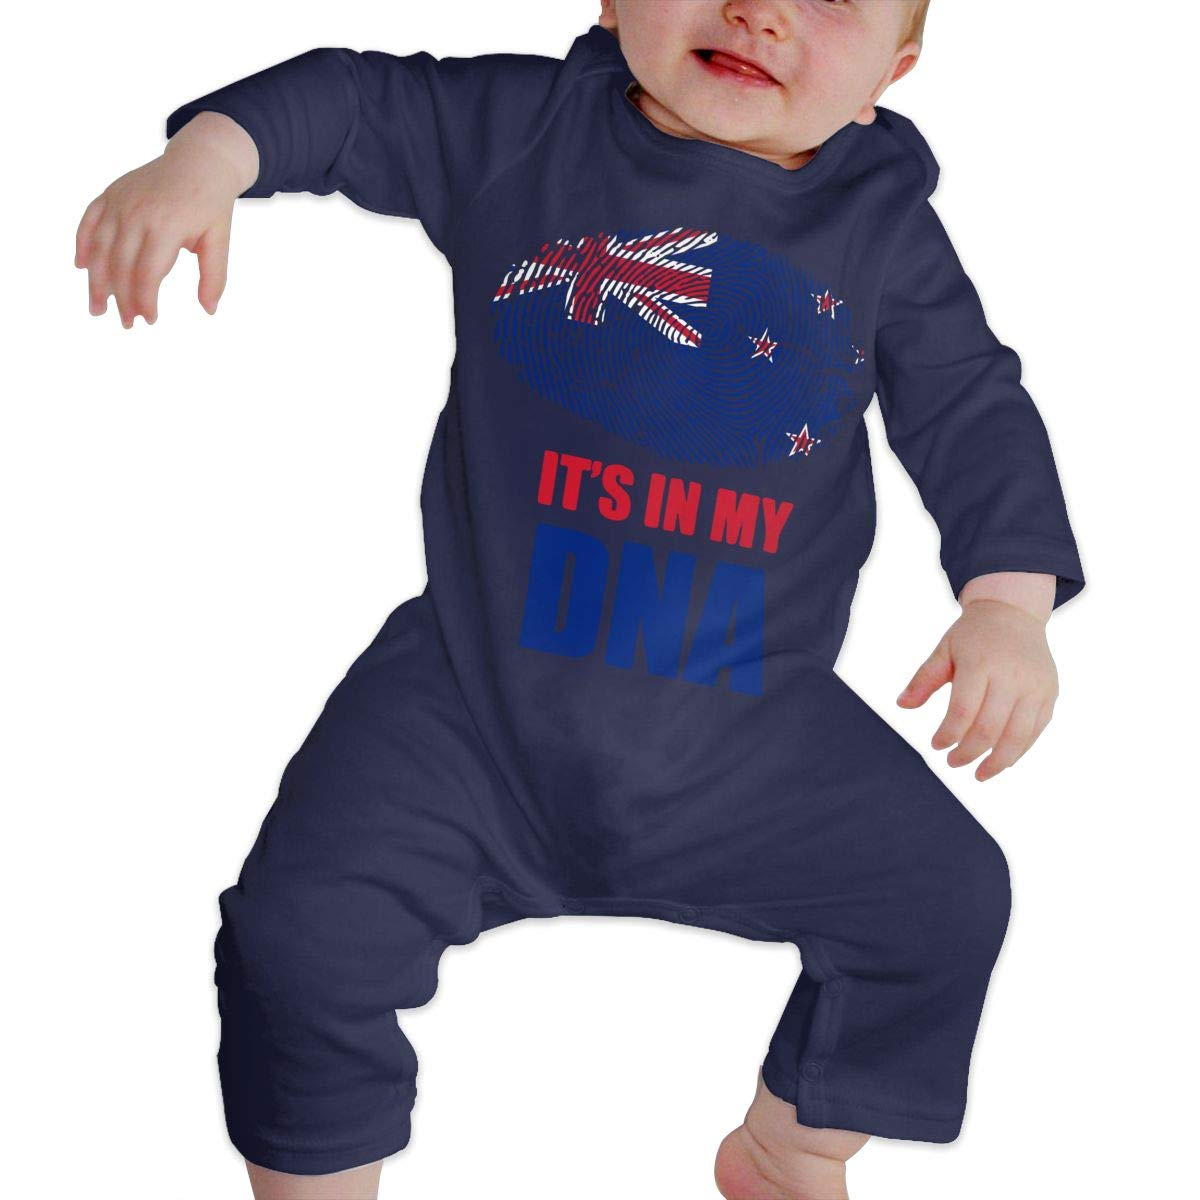 New Zealand Its in My DNA Newborn Toddler Baby Essential Basic Romper Jumpsuit Outfits Clothes